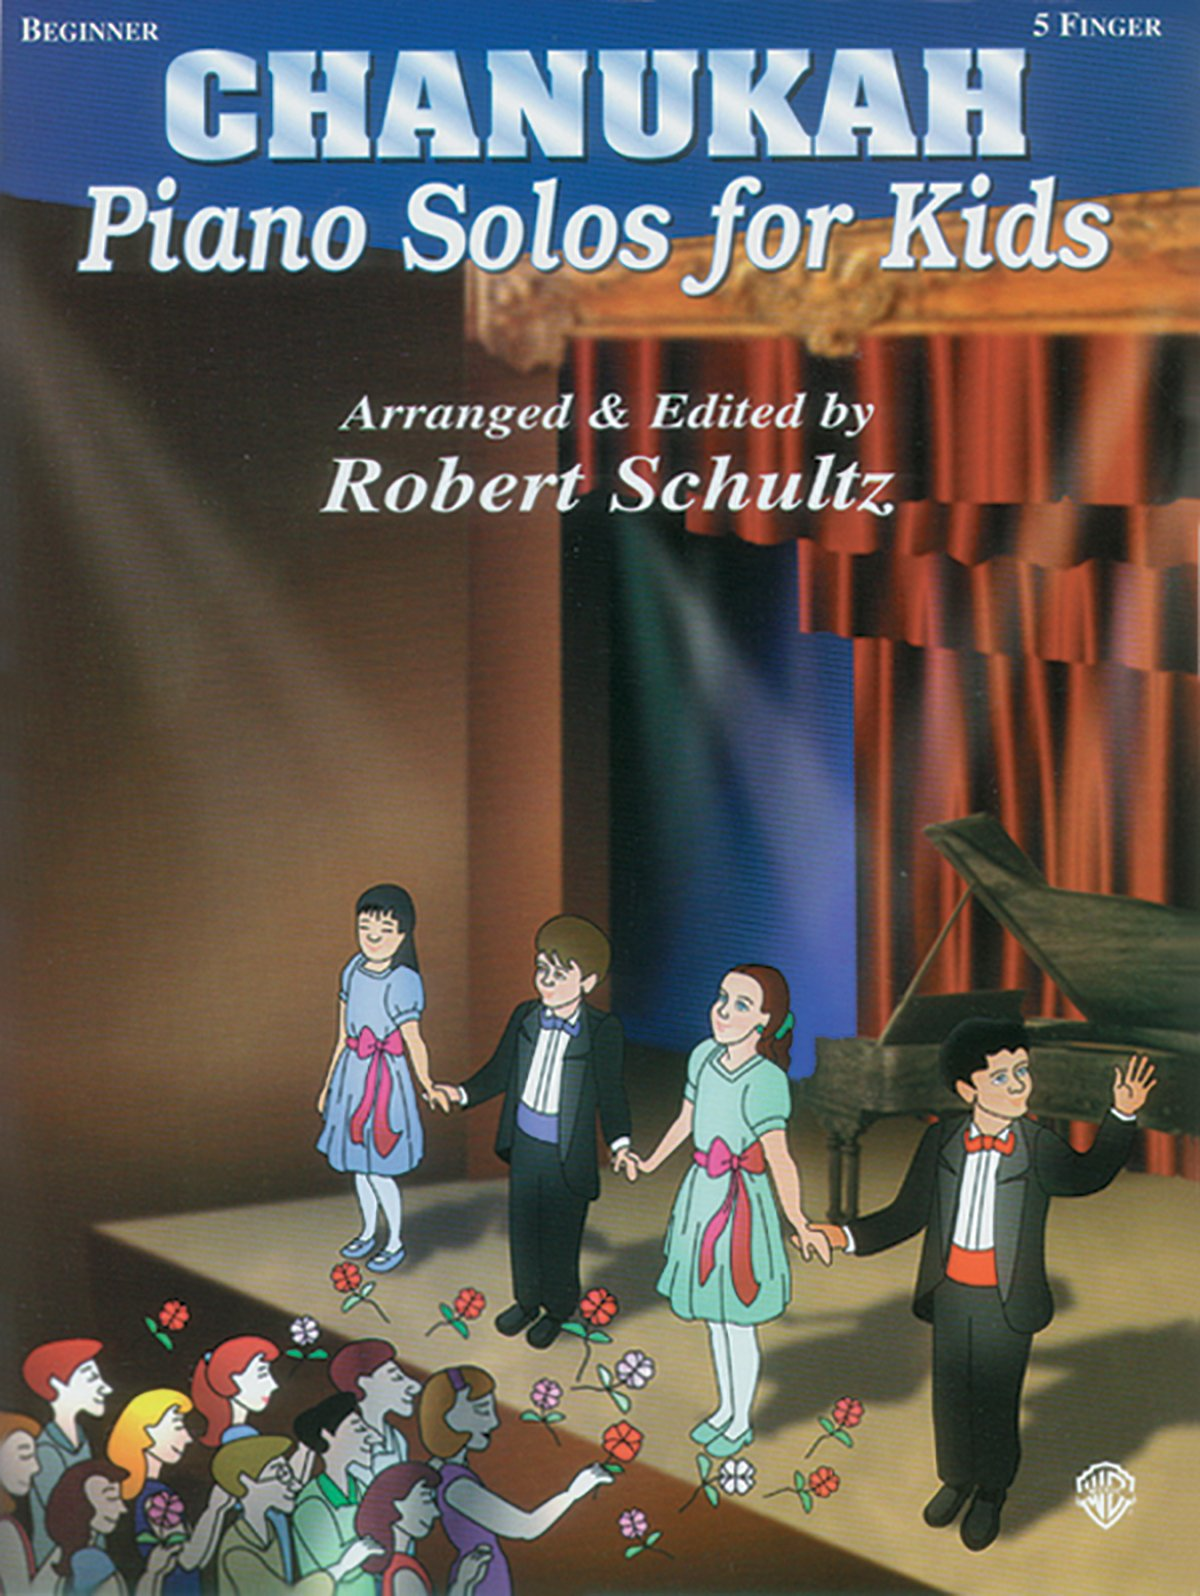 piano-solos-for-kids-chanukah